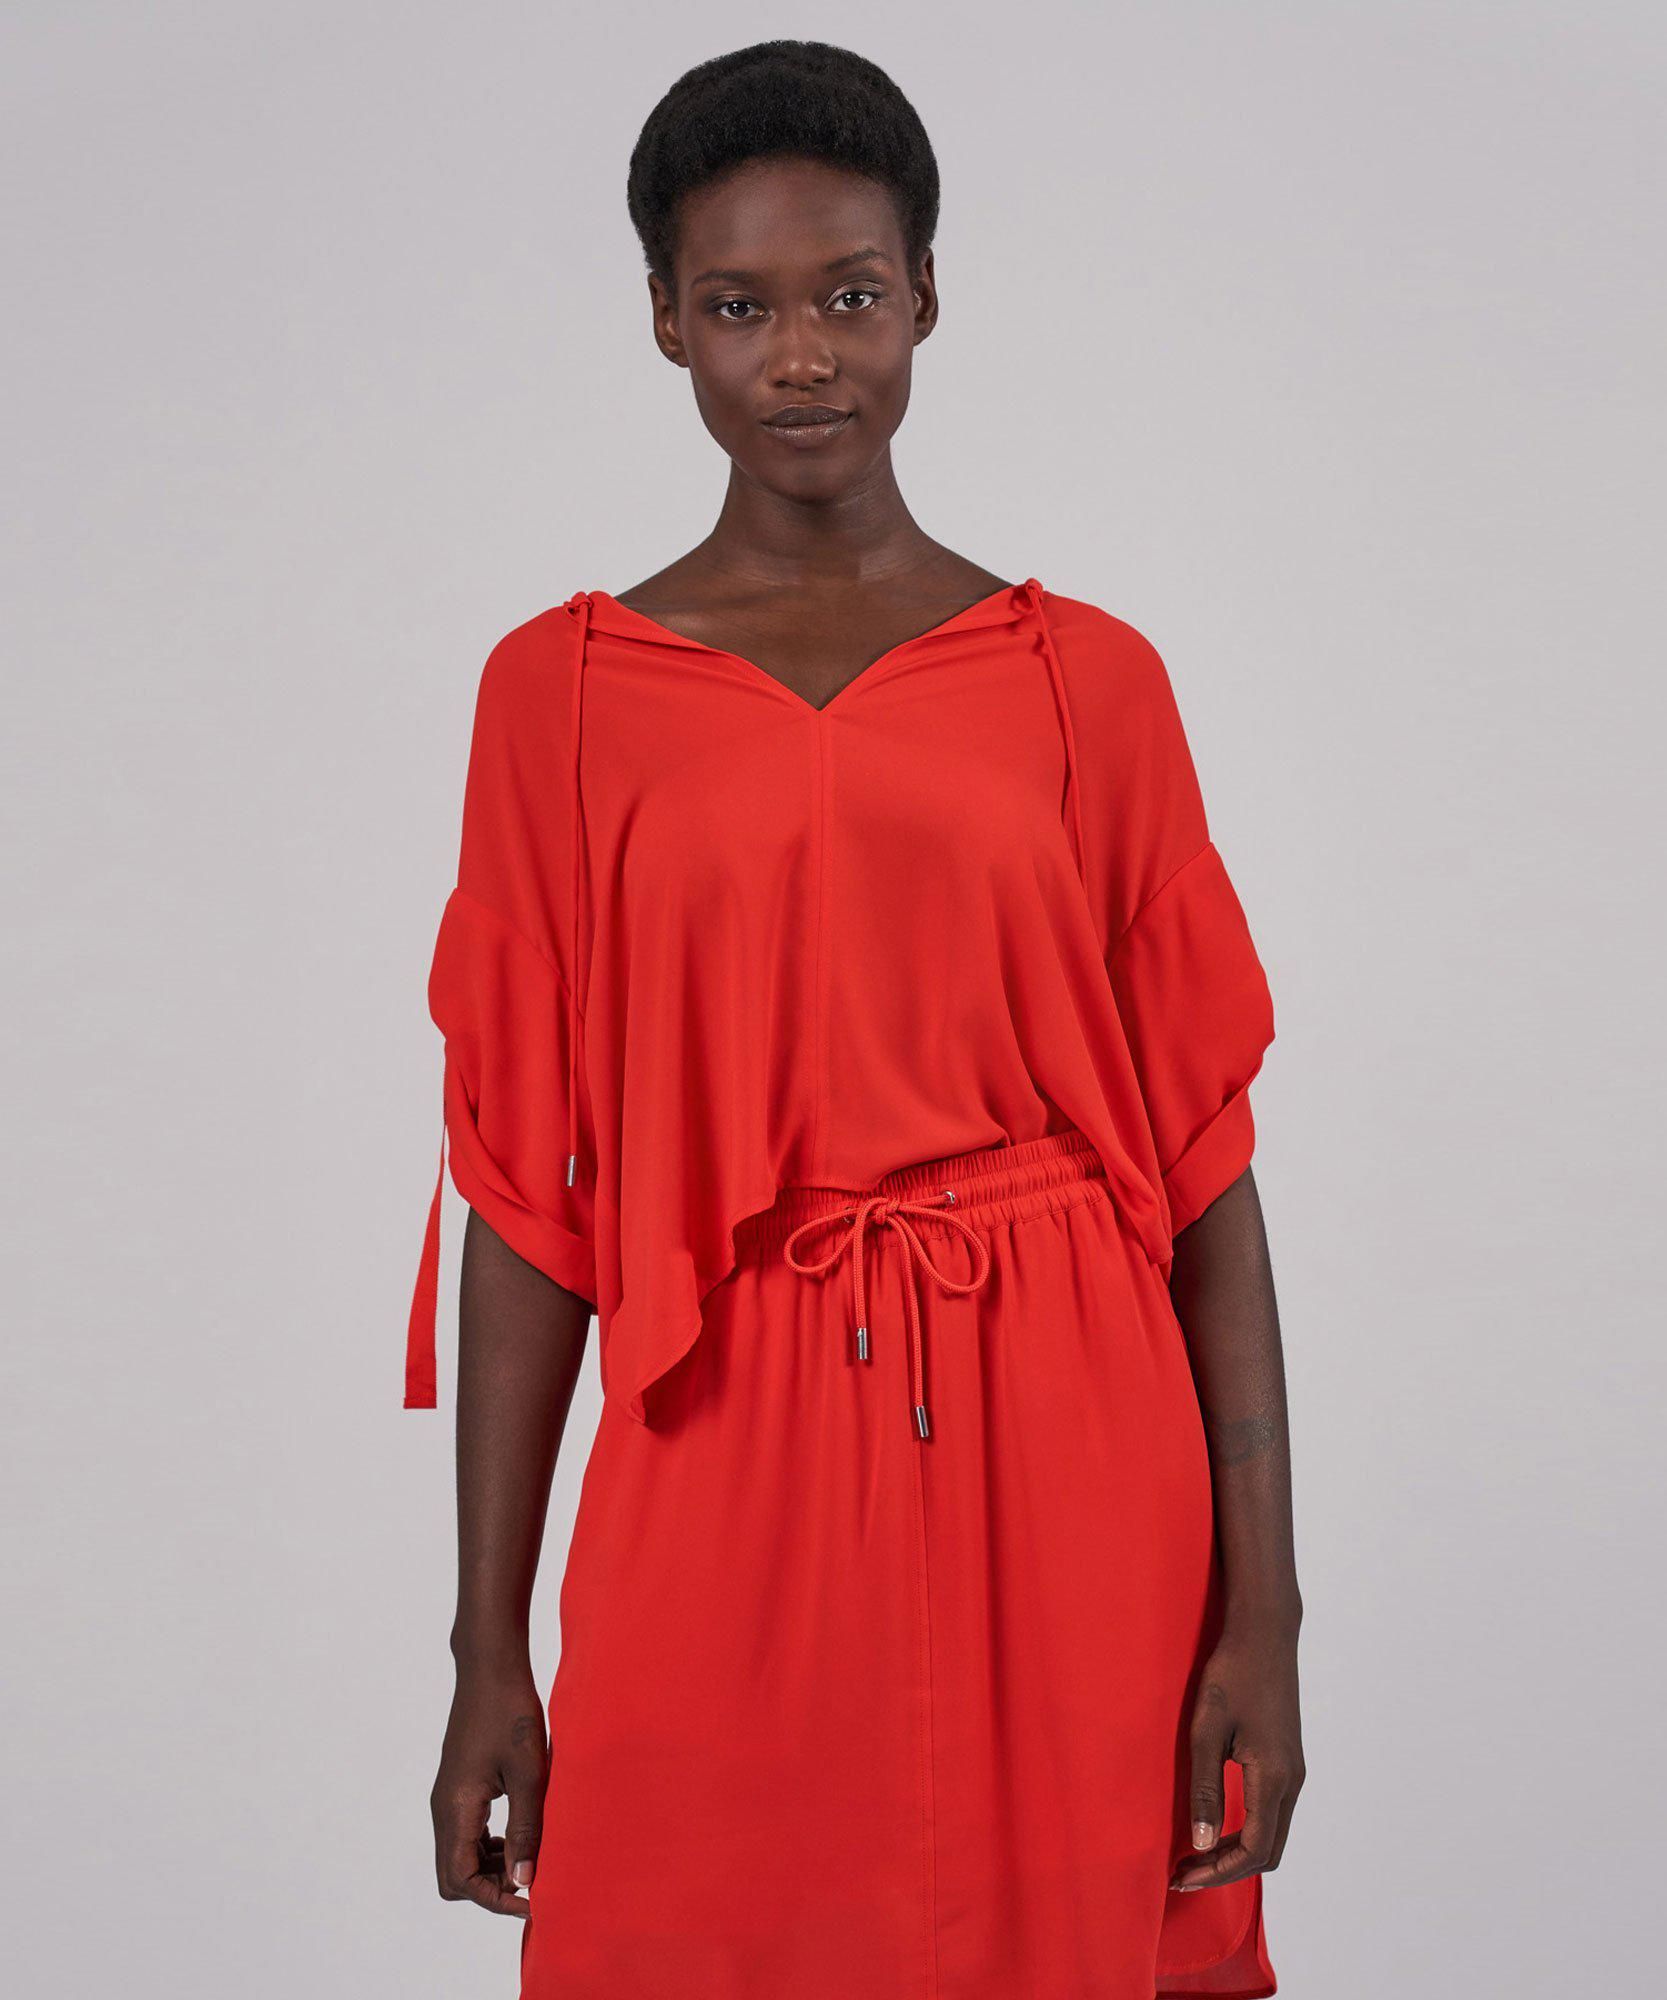 Crepe Georgette Tunic Top - Flame